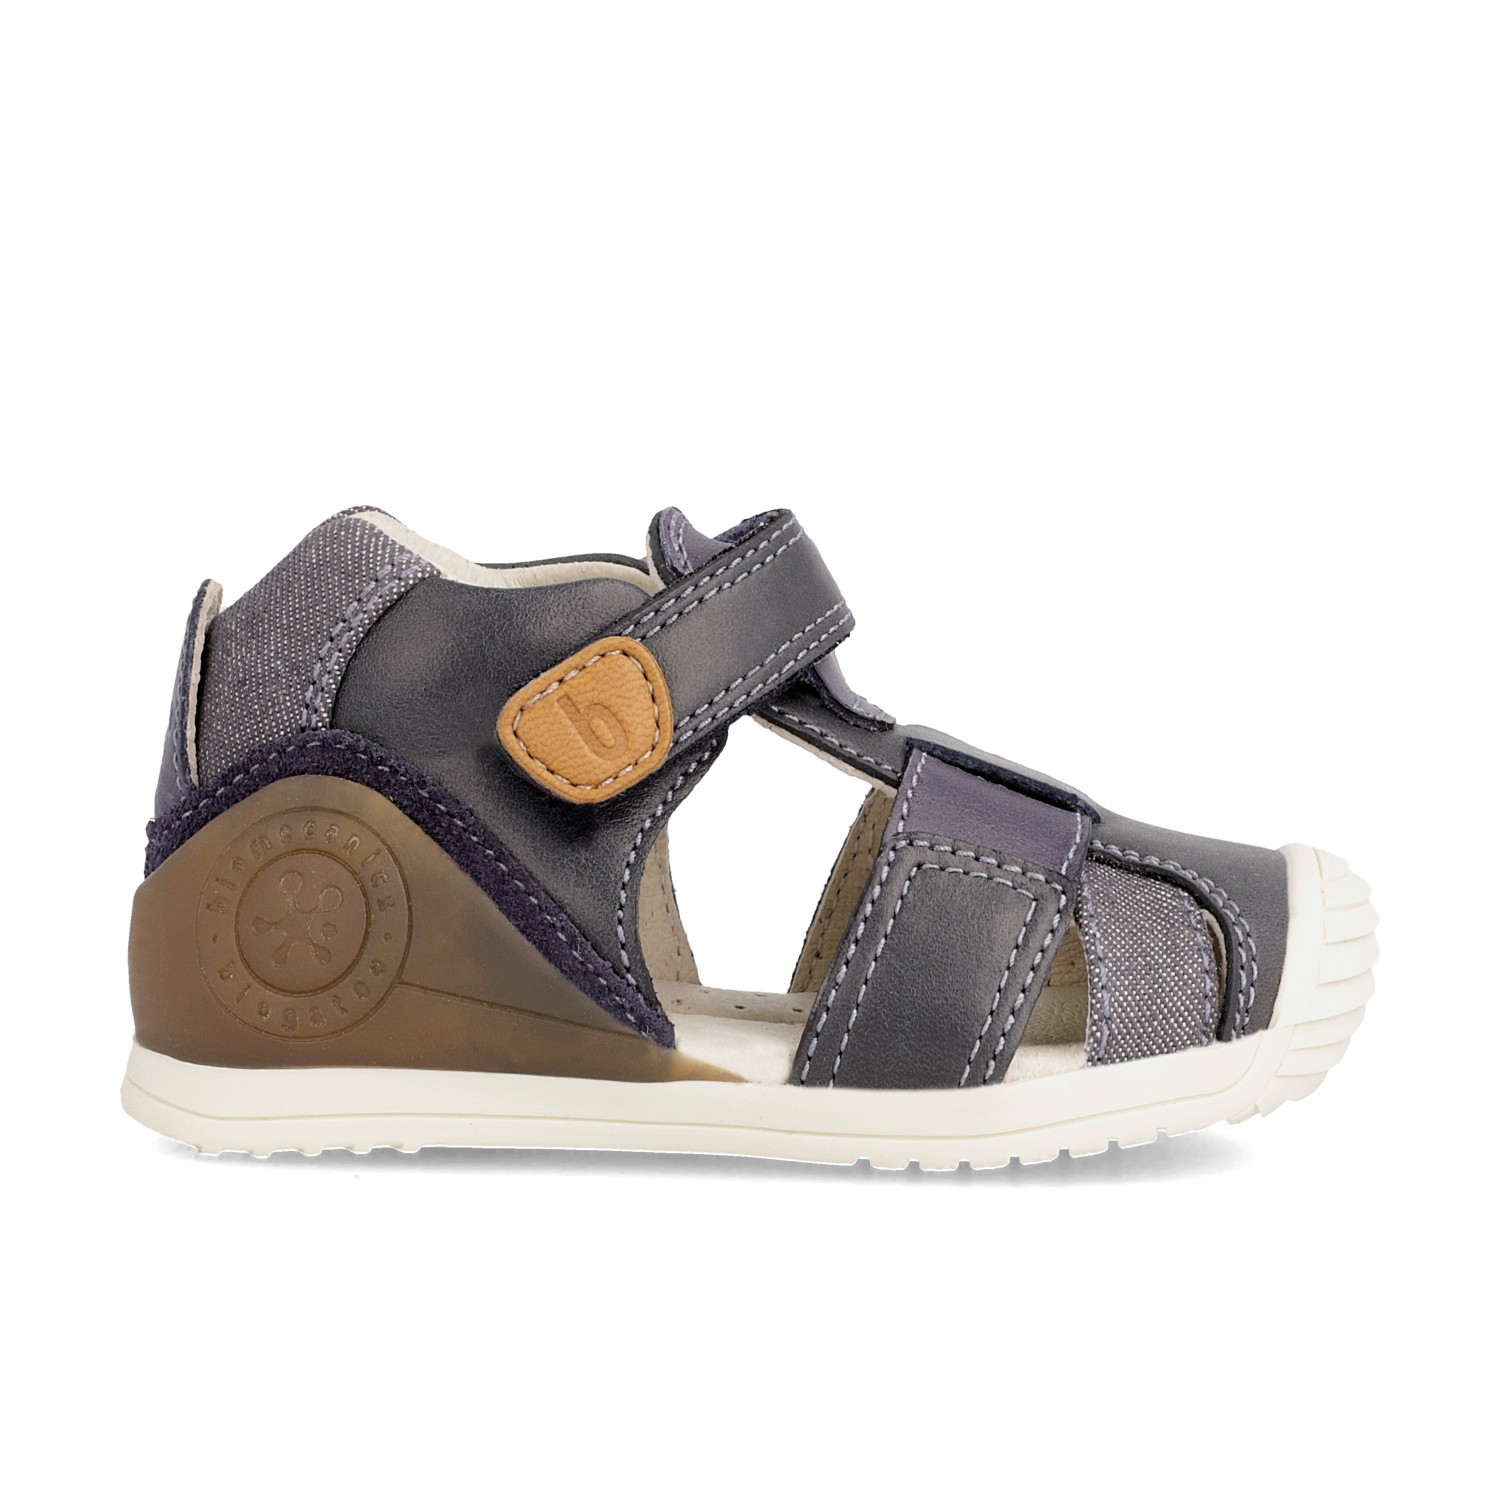 Leather sandals for baby boy Pietro